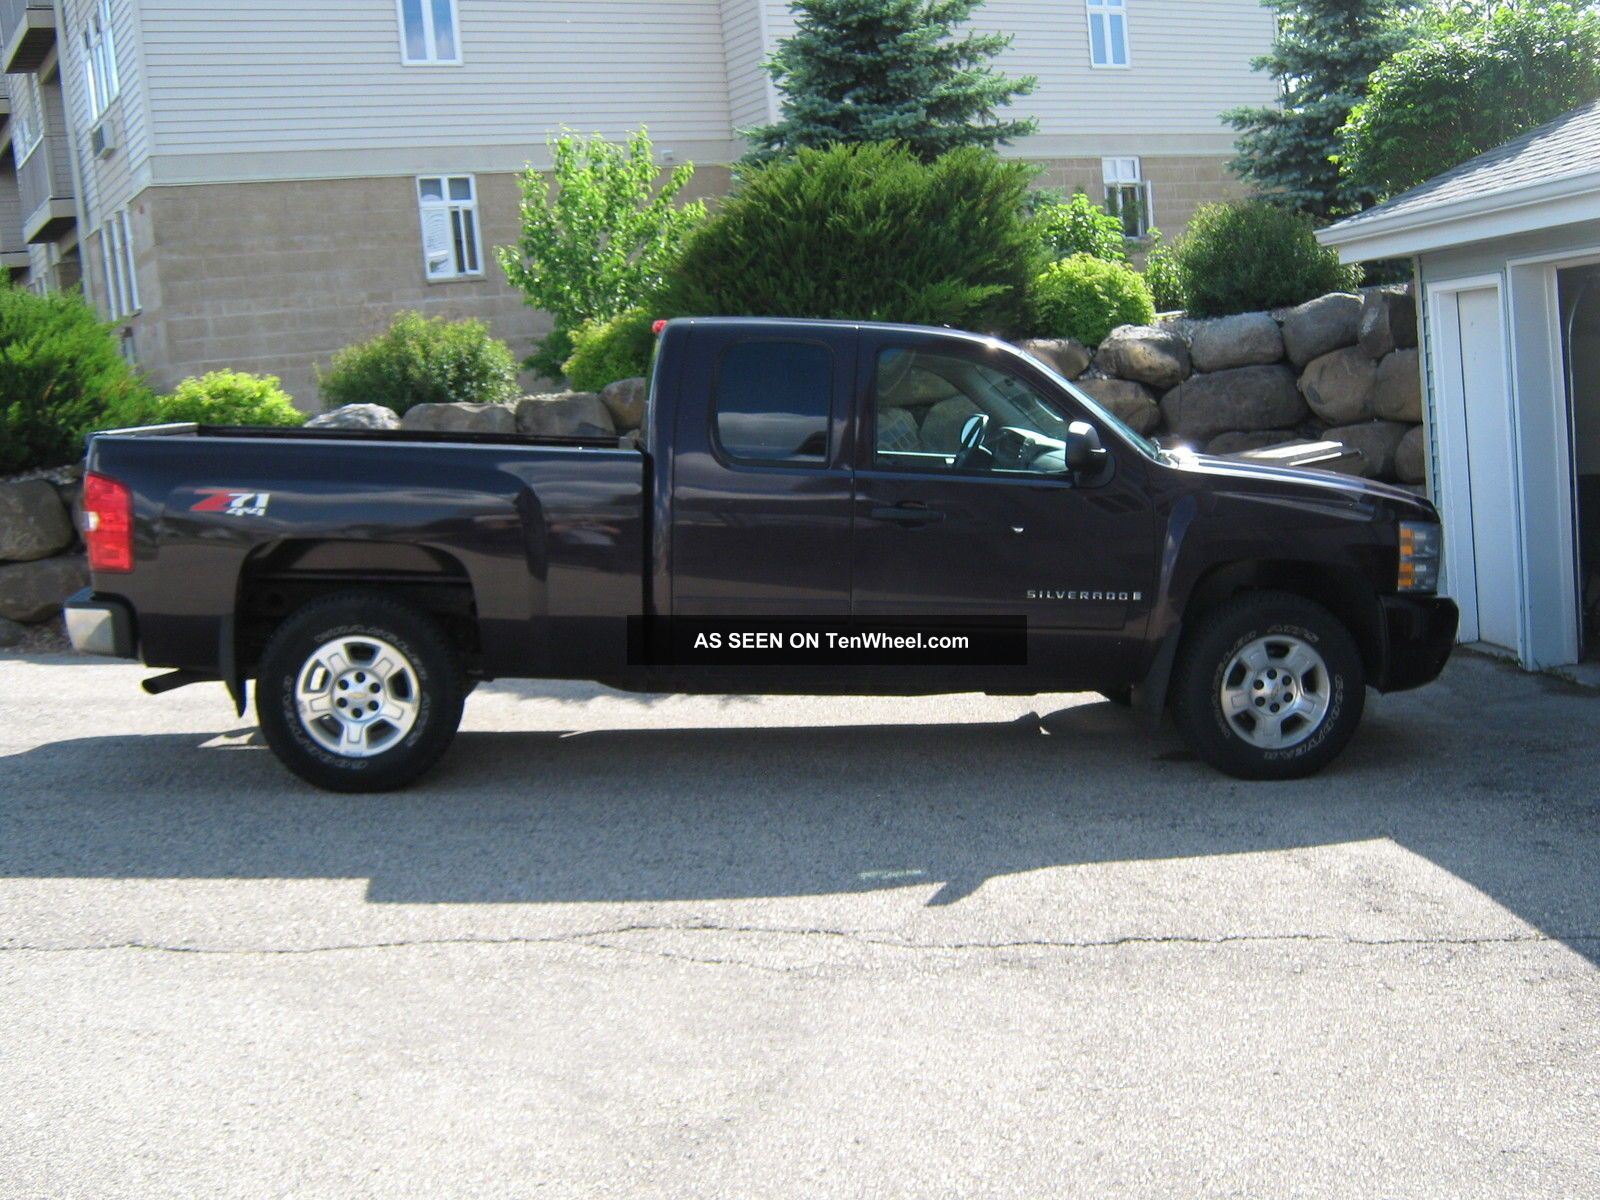 2008 chevrolet silverado 1500 lt extended cab pickup 4 door 5 3l. Black Bedroom Furniture Sets. Home Design Ideas